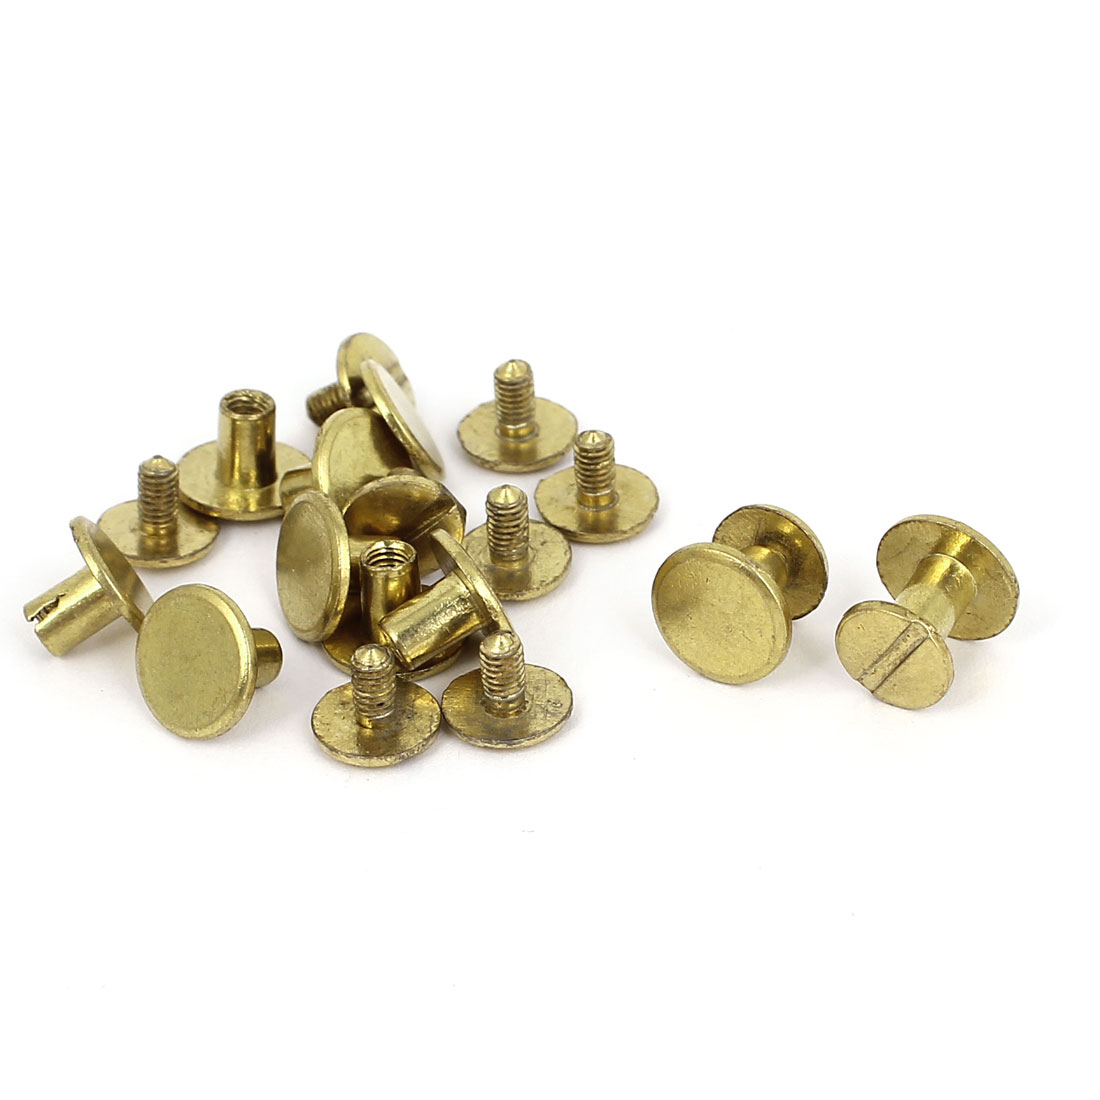 4.5x7.5mm Brass Plated Binding Chicago Screw Post For Albums Scrapbook 10pcs